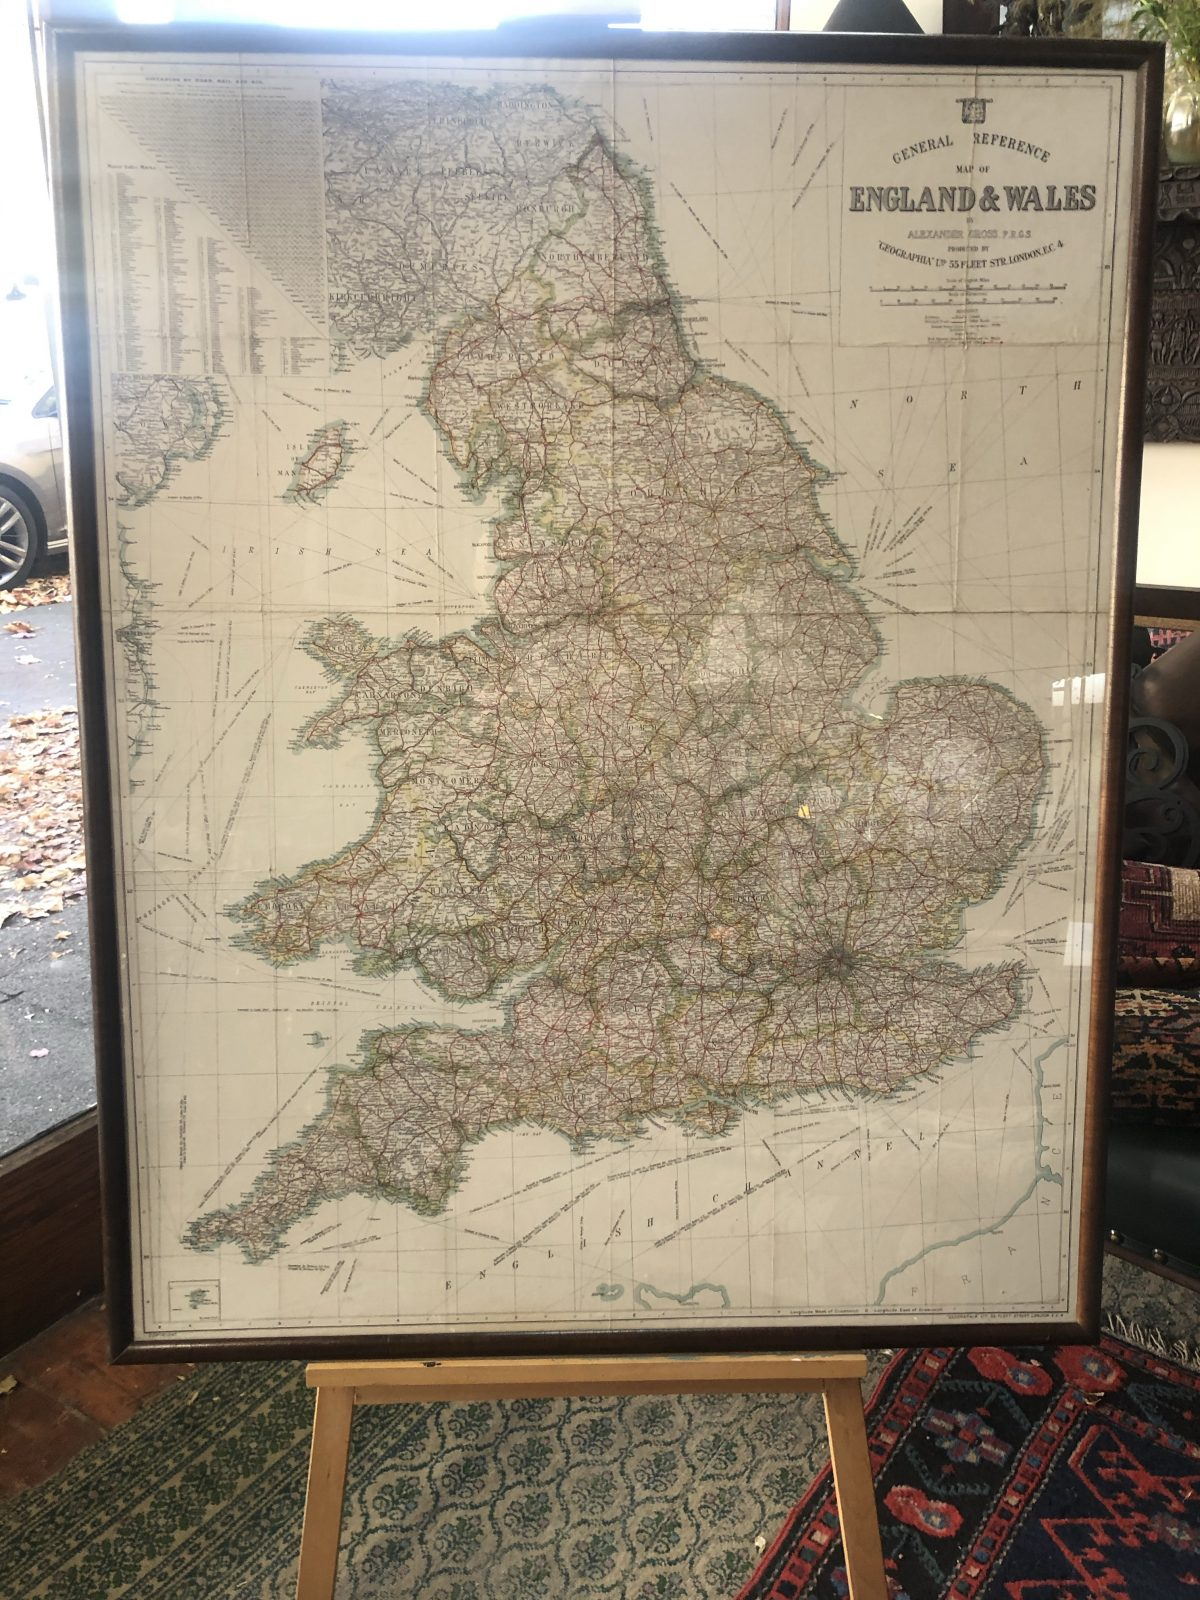 161. Map of England and Wales.